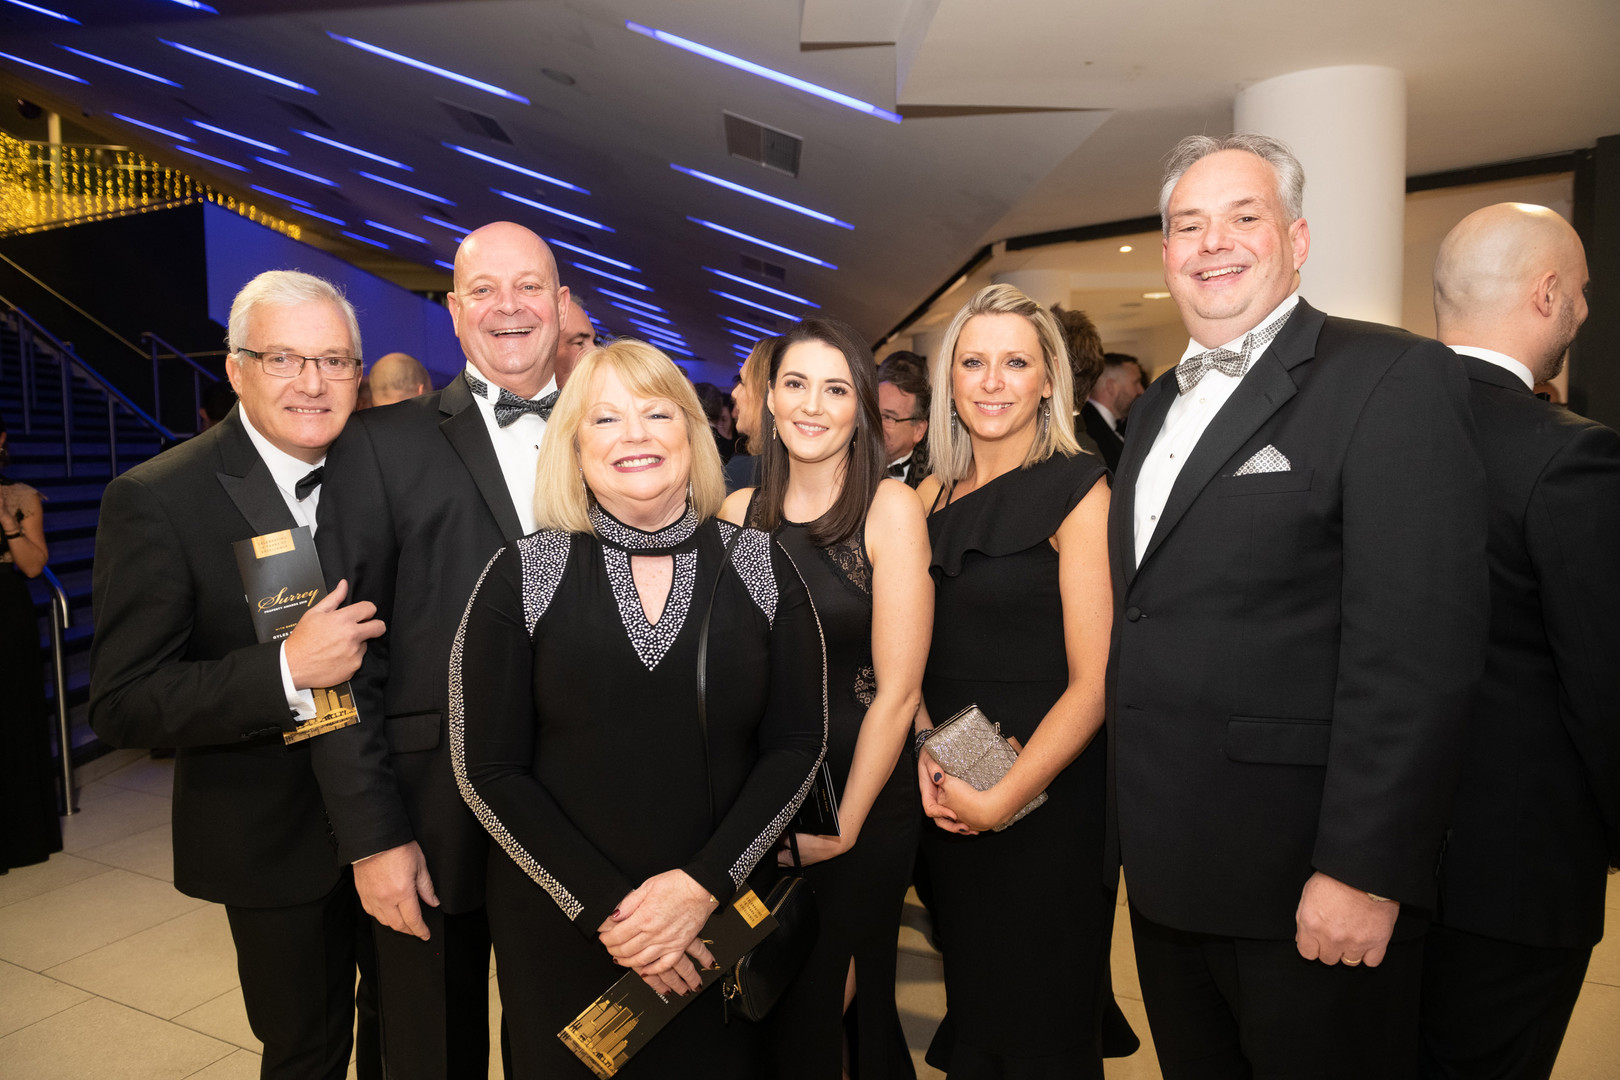 SurreyPropertyAwards_Nov2019_192.jpg